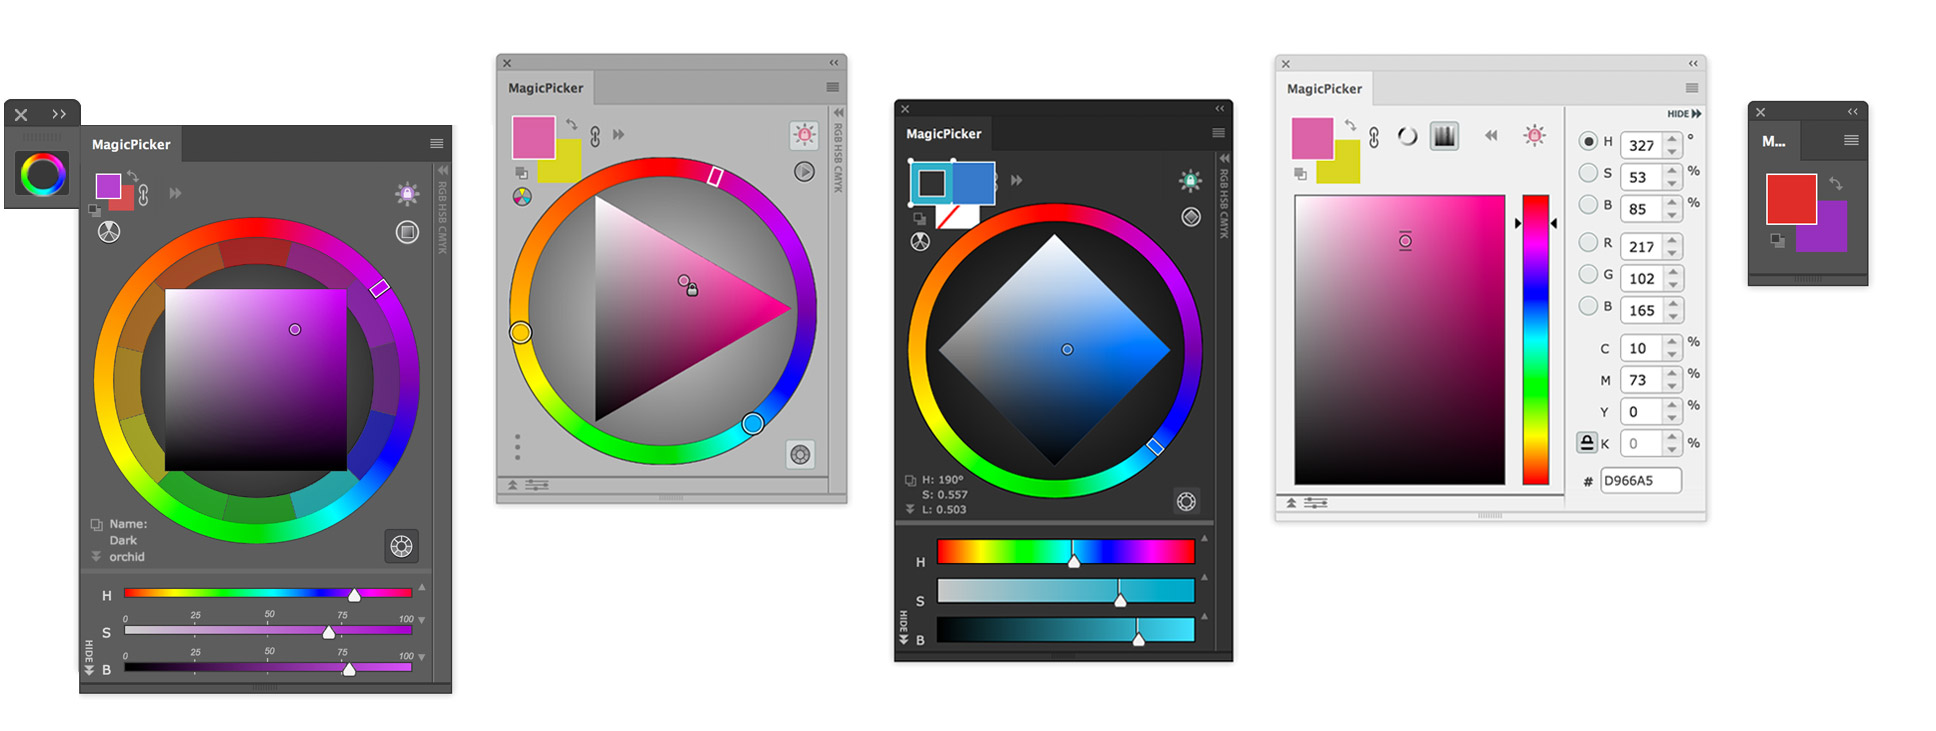 MagicPicker color wheel plugin for Adobe Photoshop and Illustrator